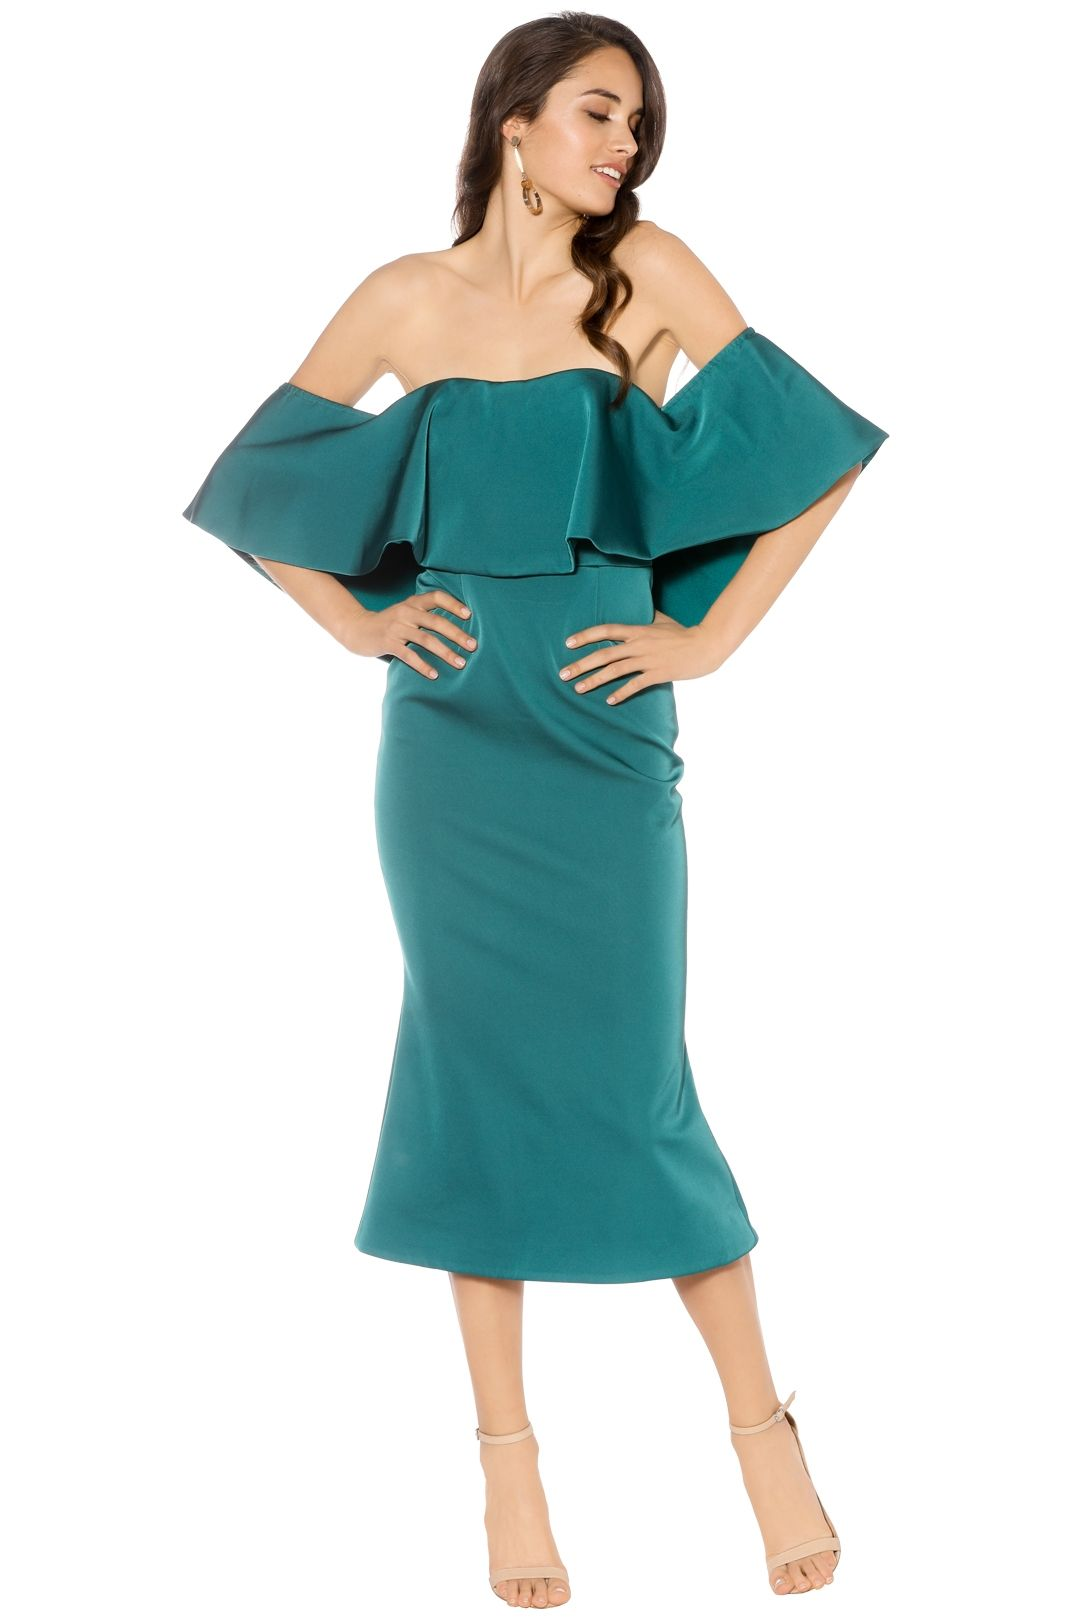 Talulah - Without You Midi - Emerald - Front - Teal